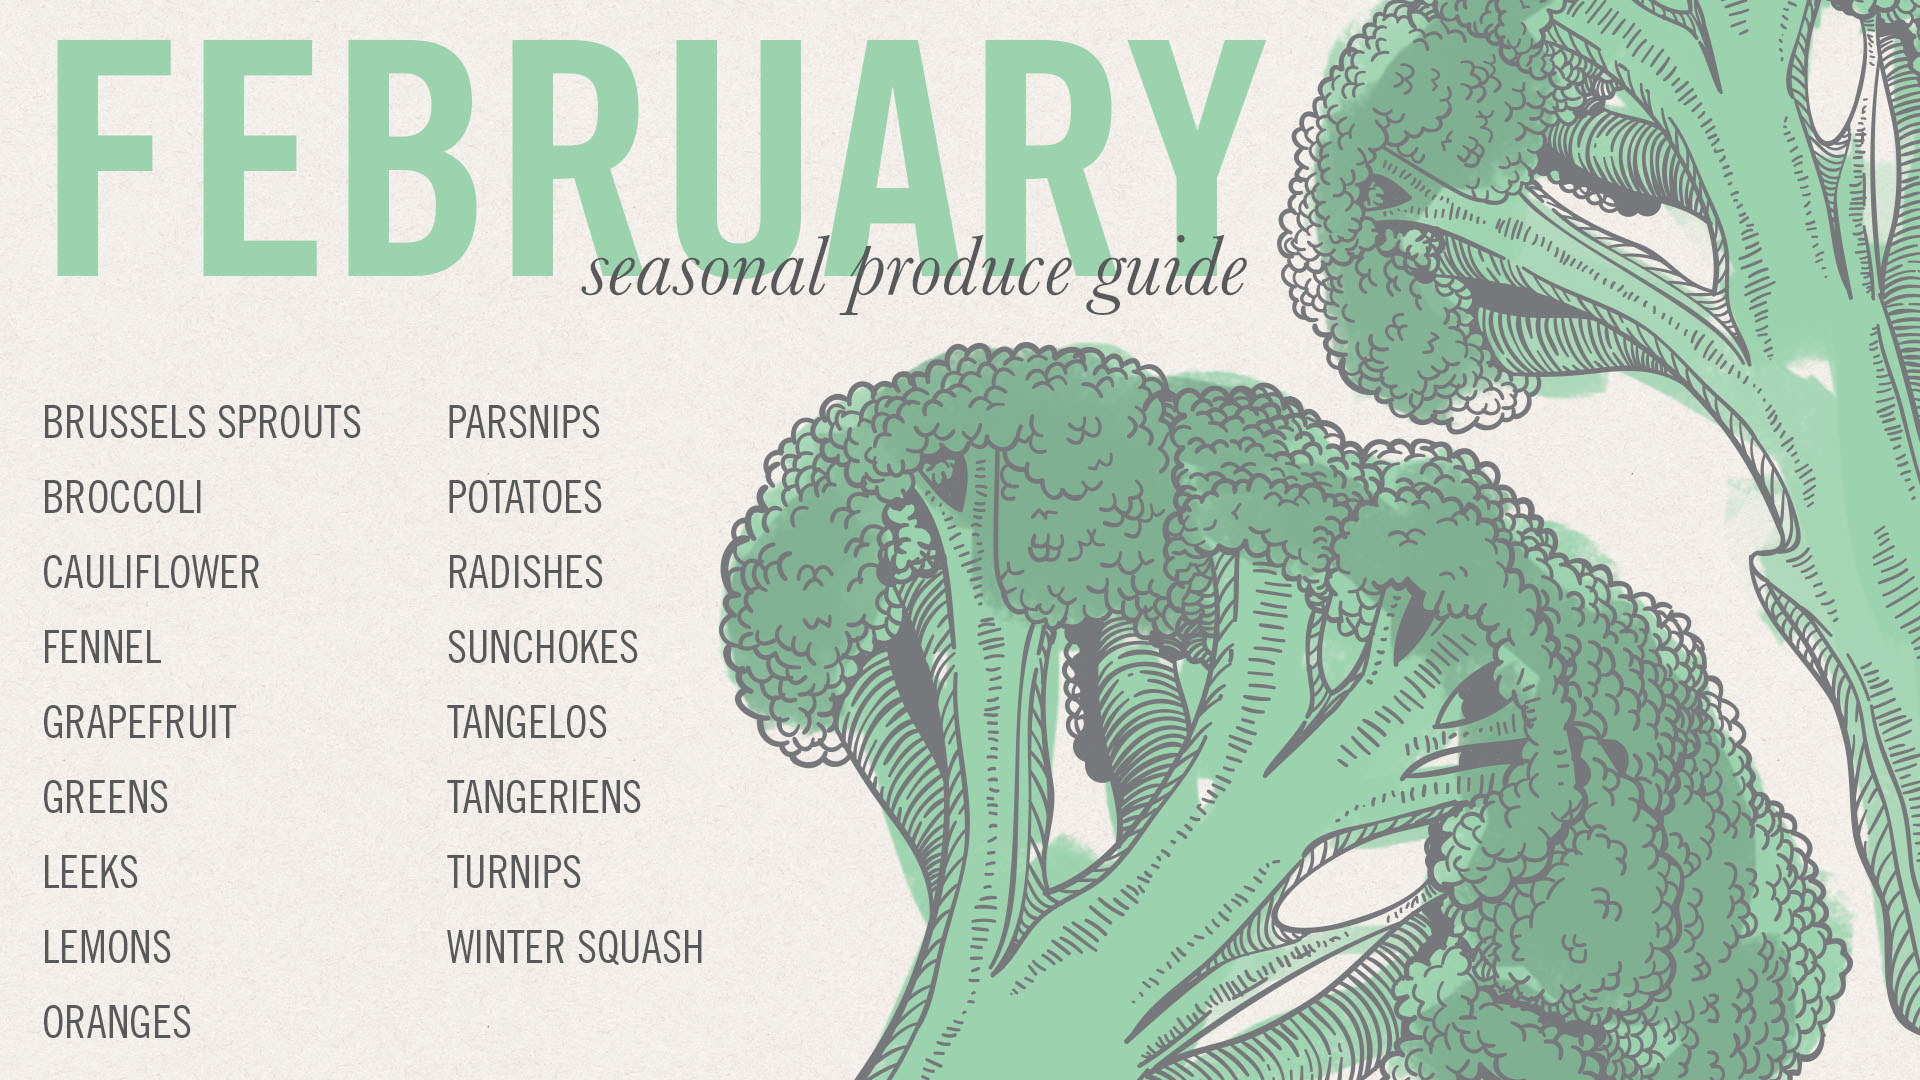 Seasonal Produce Guide for February